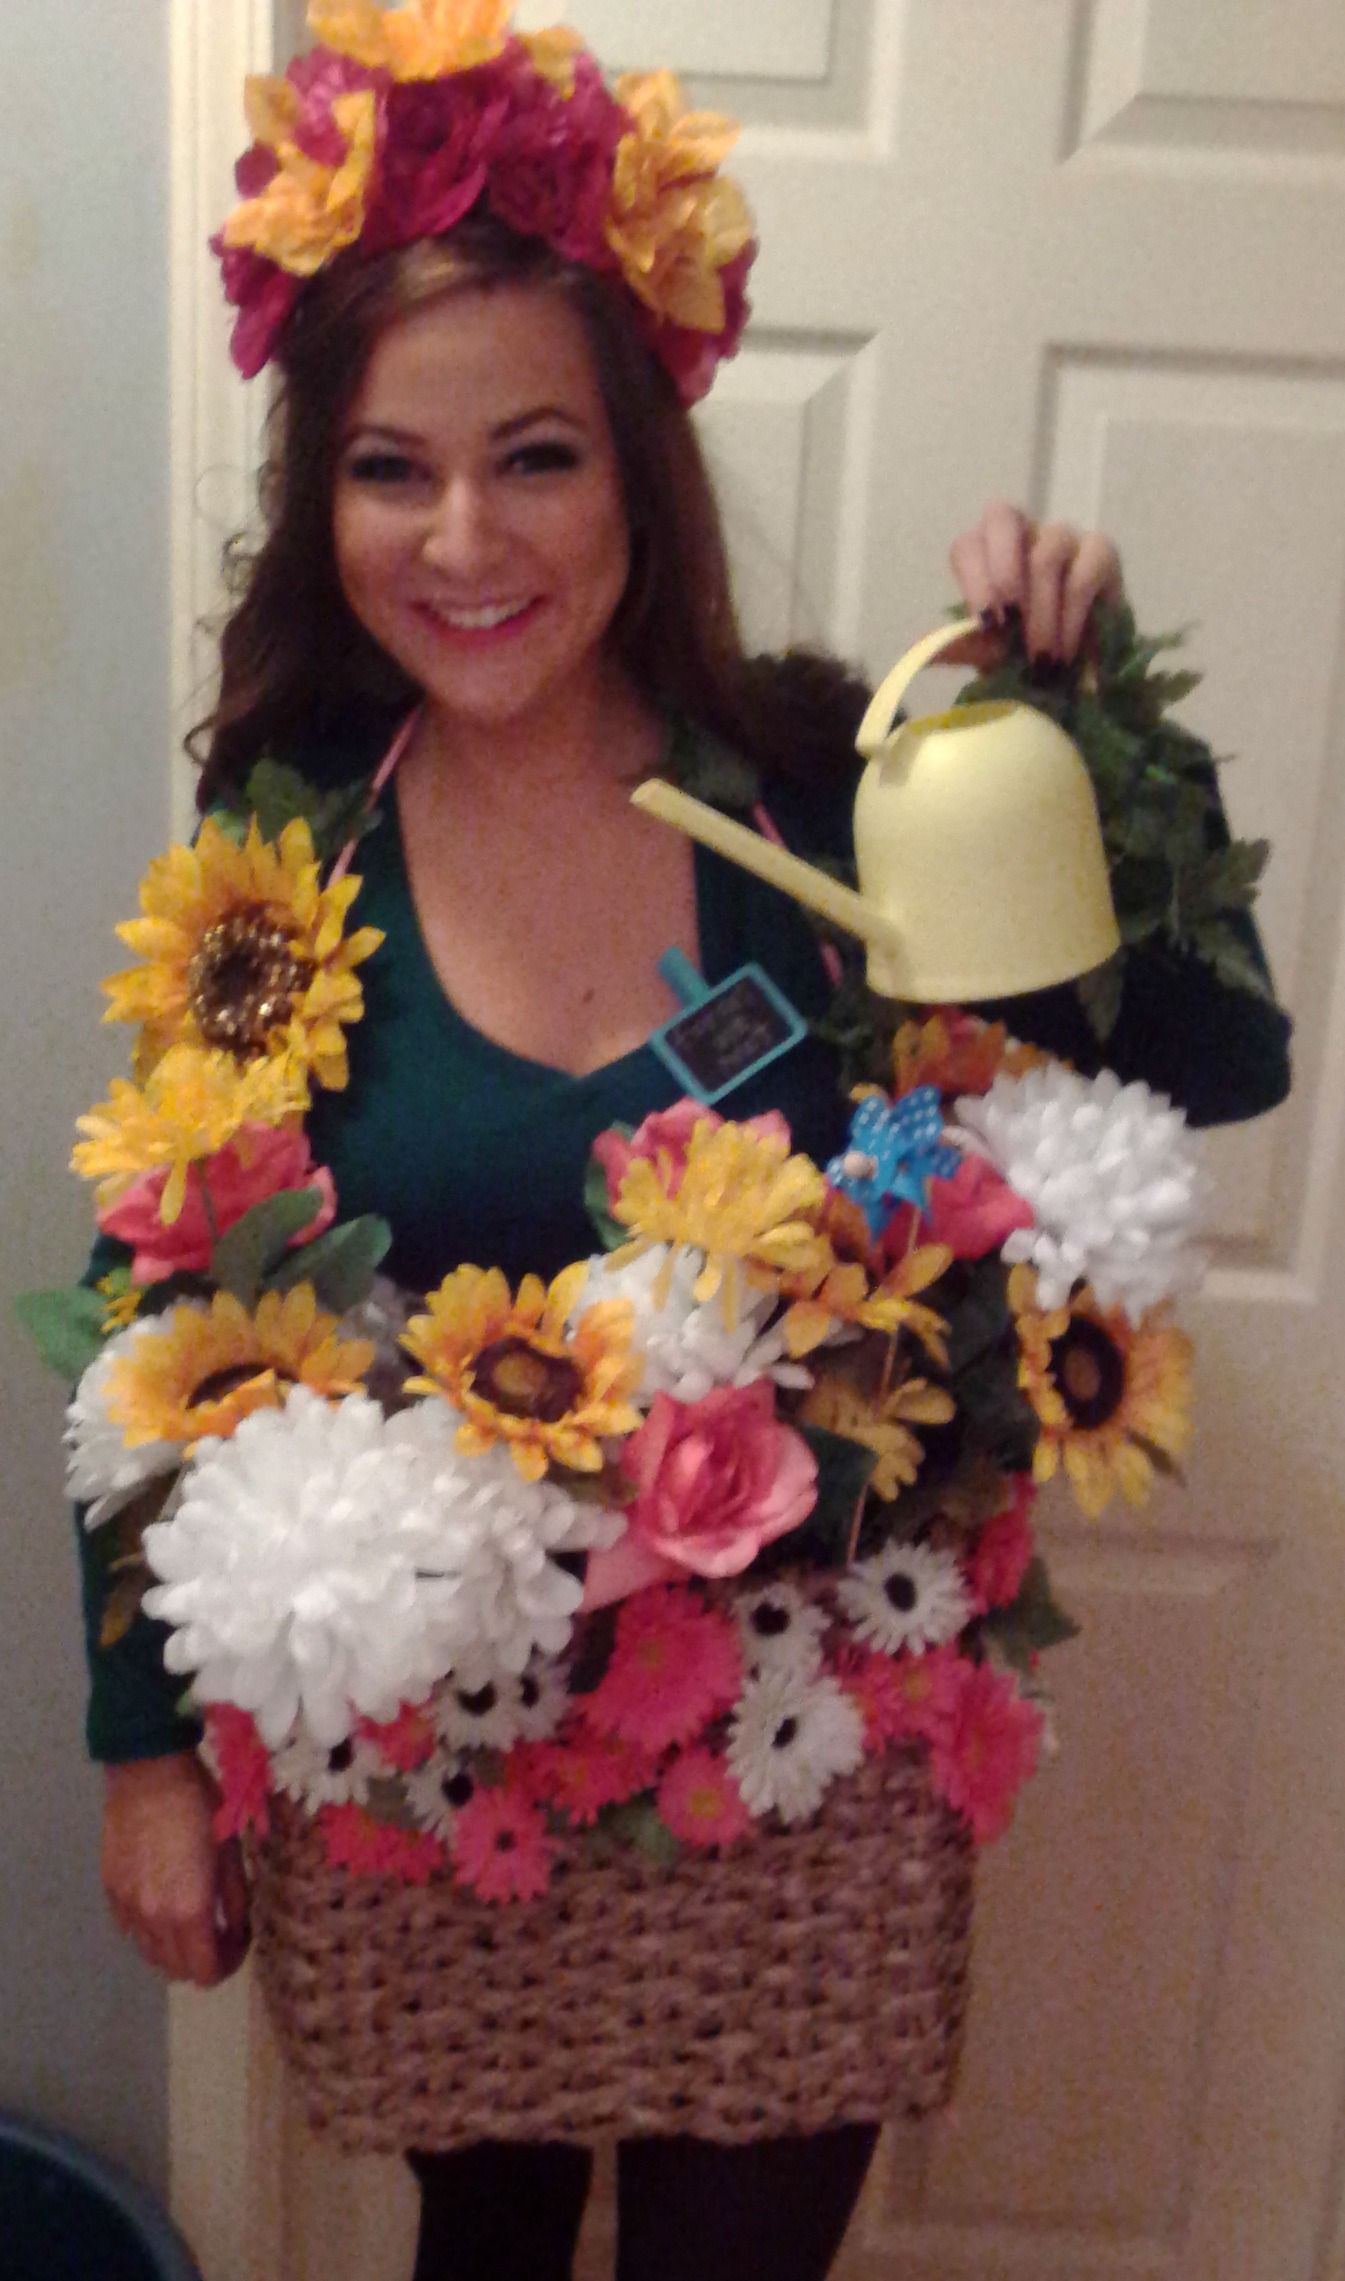 Homemade Flower Pot Halloween Costume Used The Watering Can To